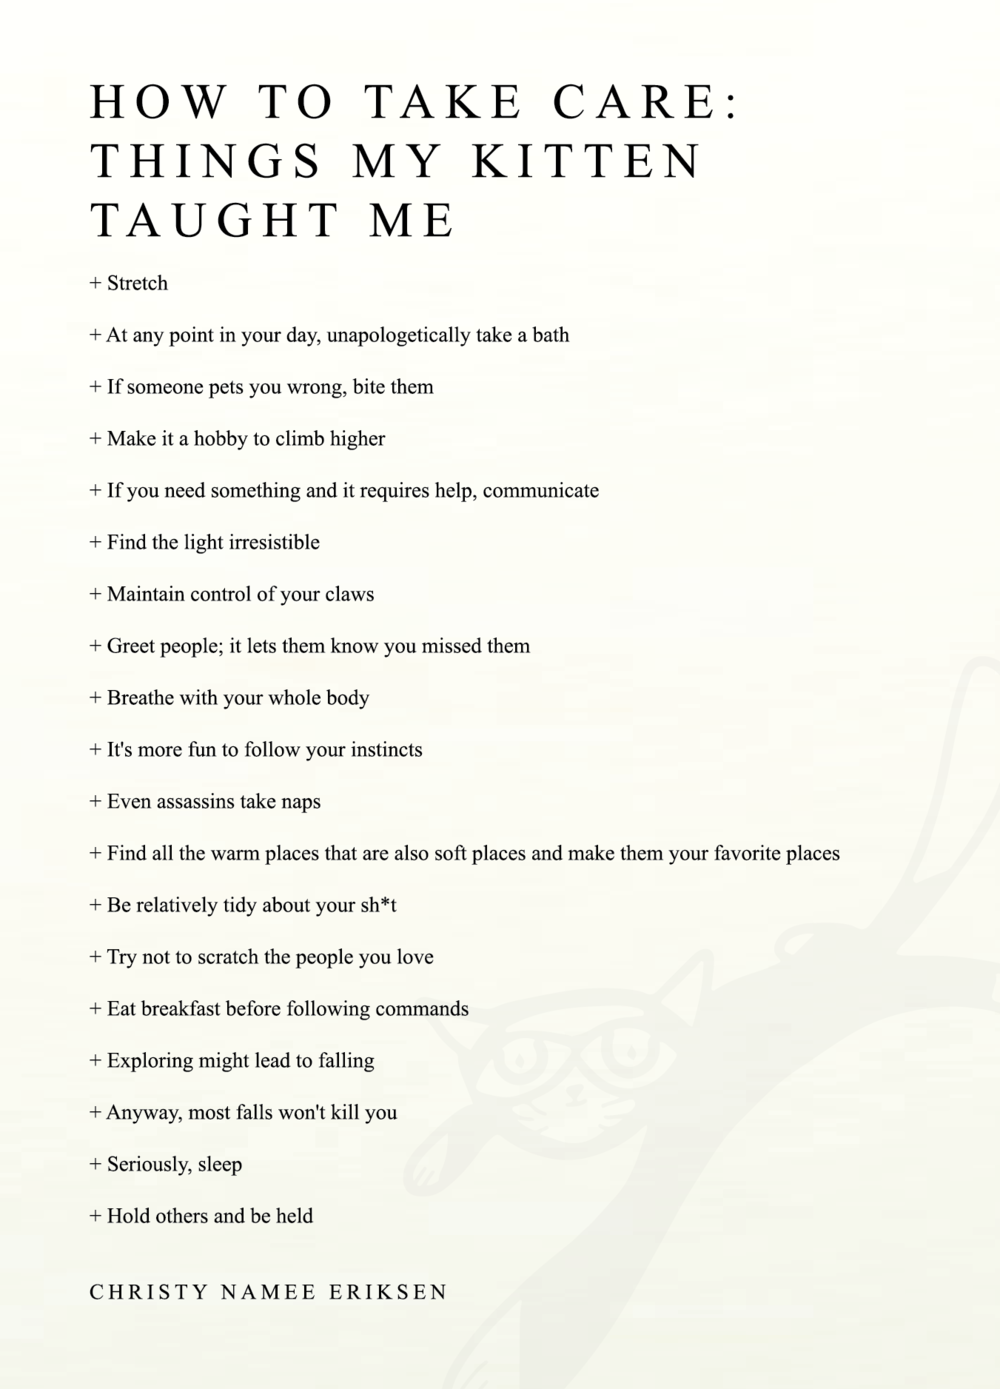 How to Take Care: Things My Kitten Taught Me (letterpress poem + pin)